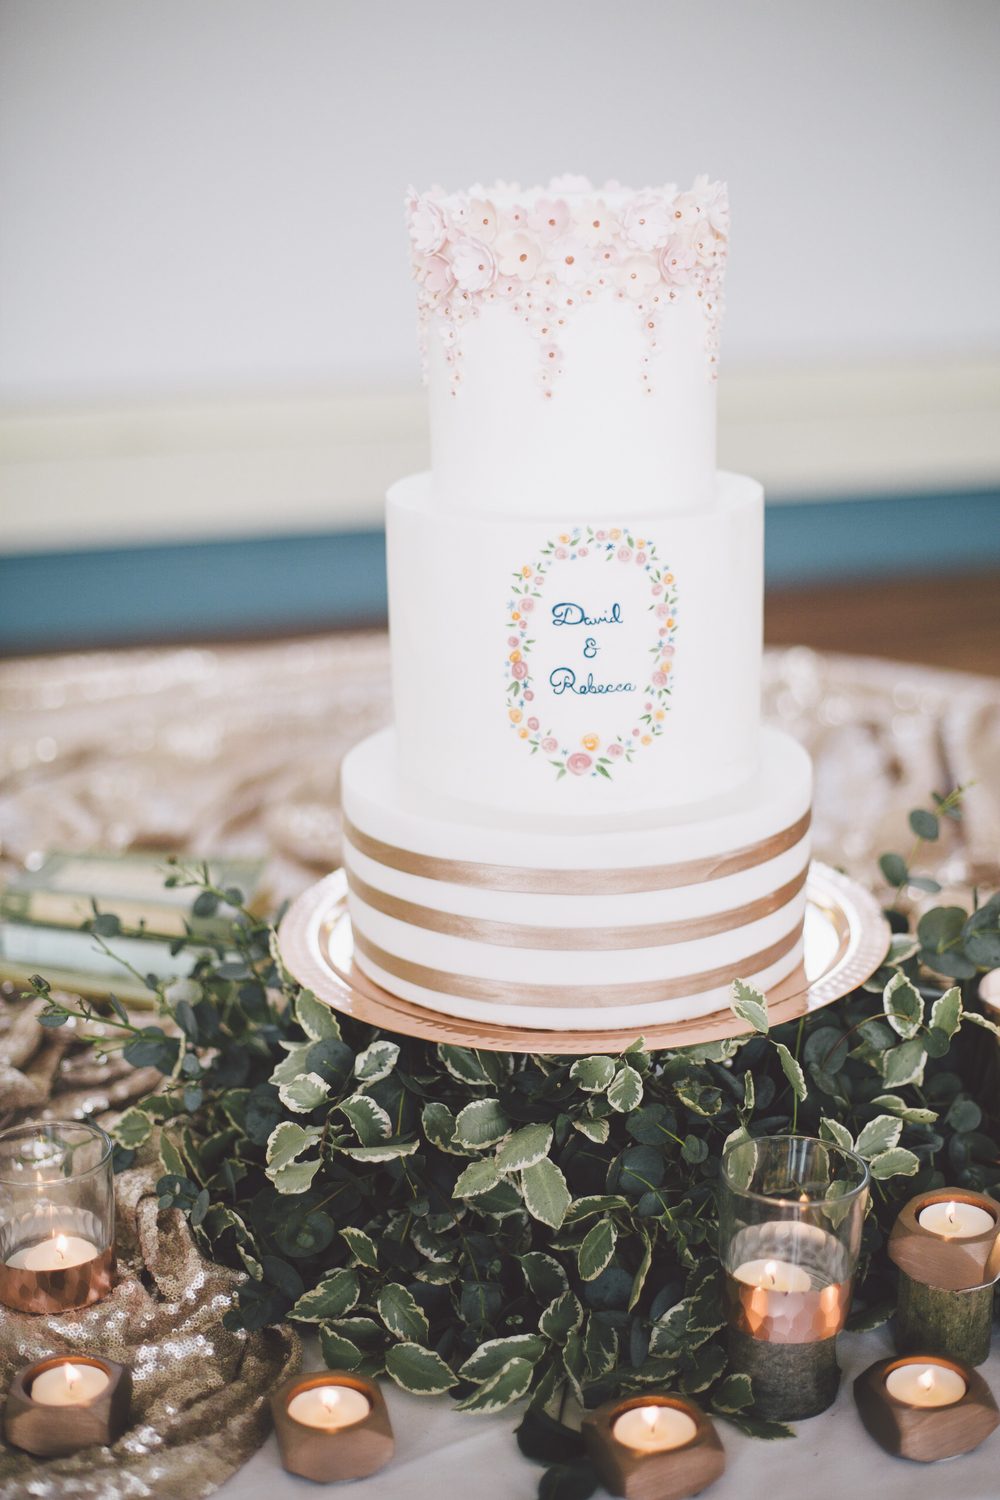 Cake by Edible Essence. Photo by Grace Elizabeth Photography